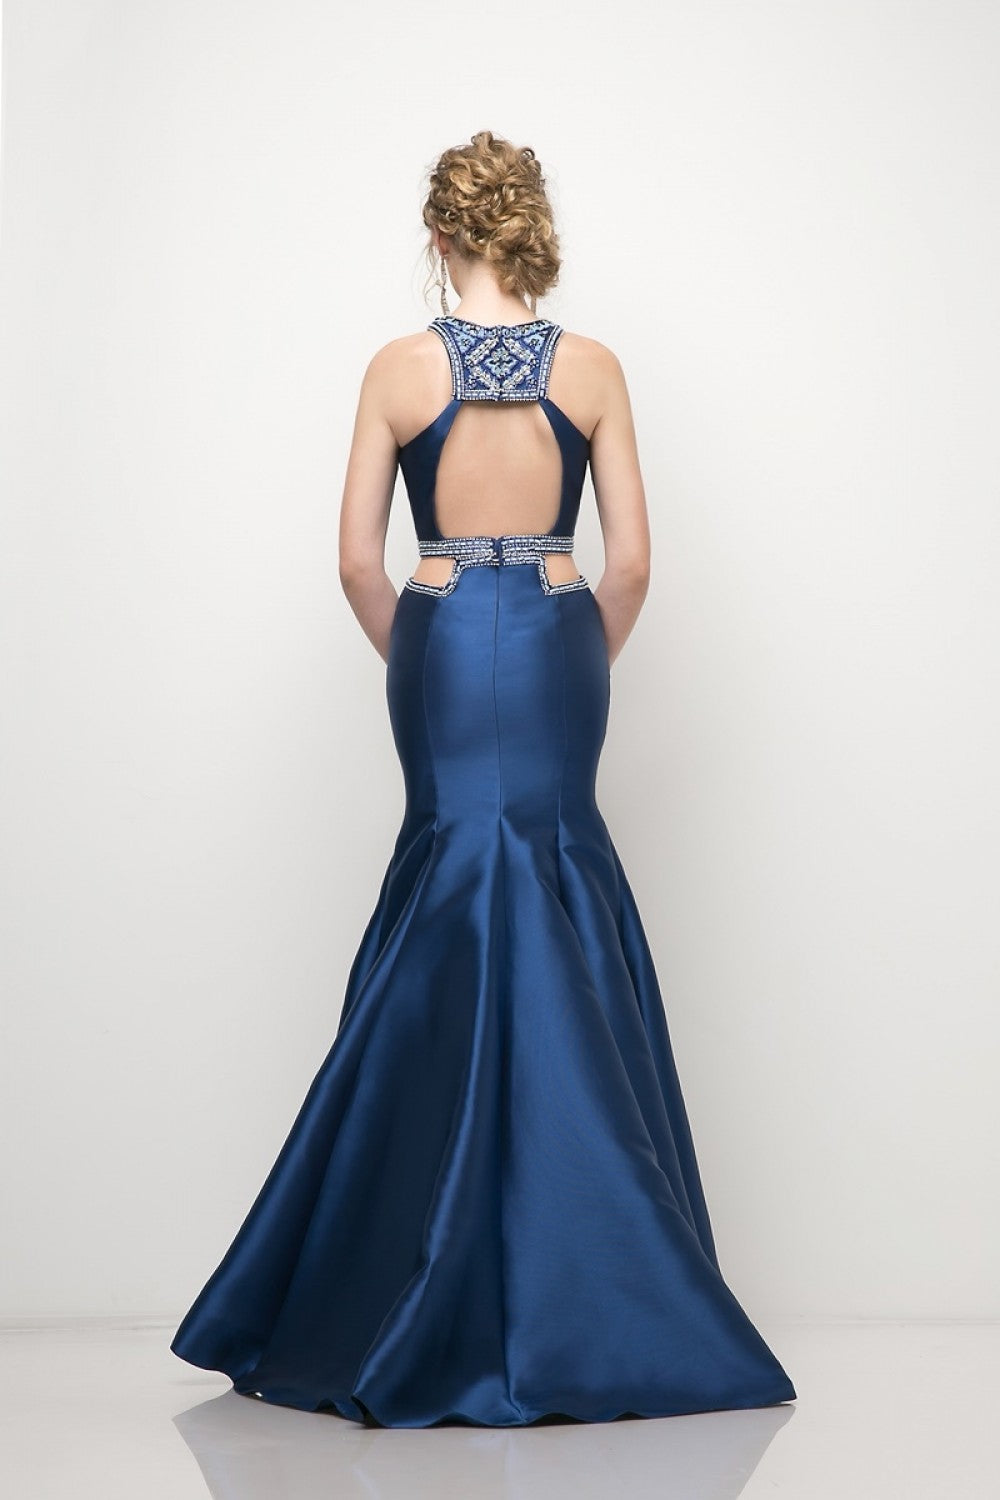 Halter Mermaid Mikado Gown With Waist Cut Outs And Geometric Beaded Details